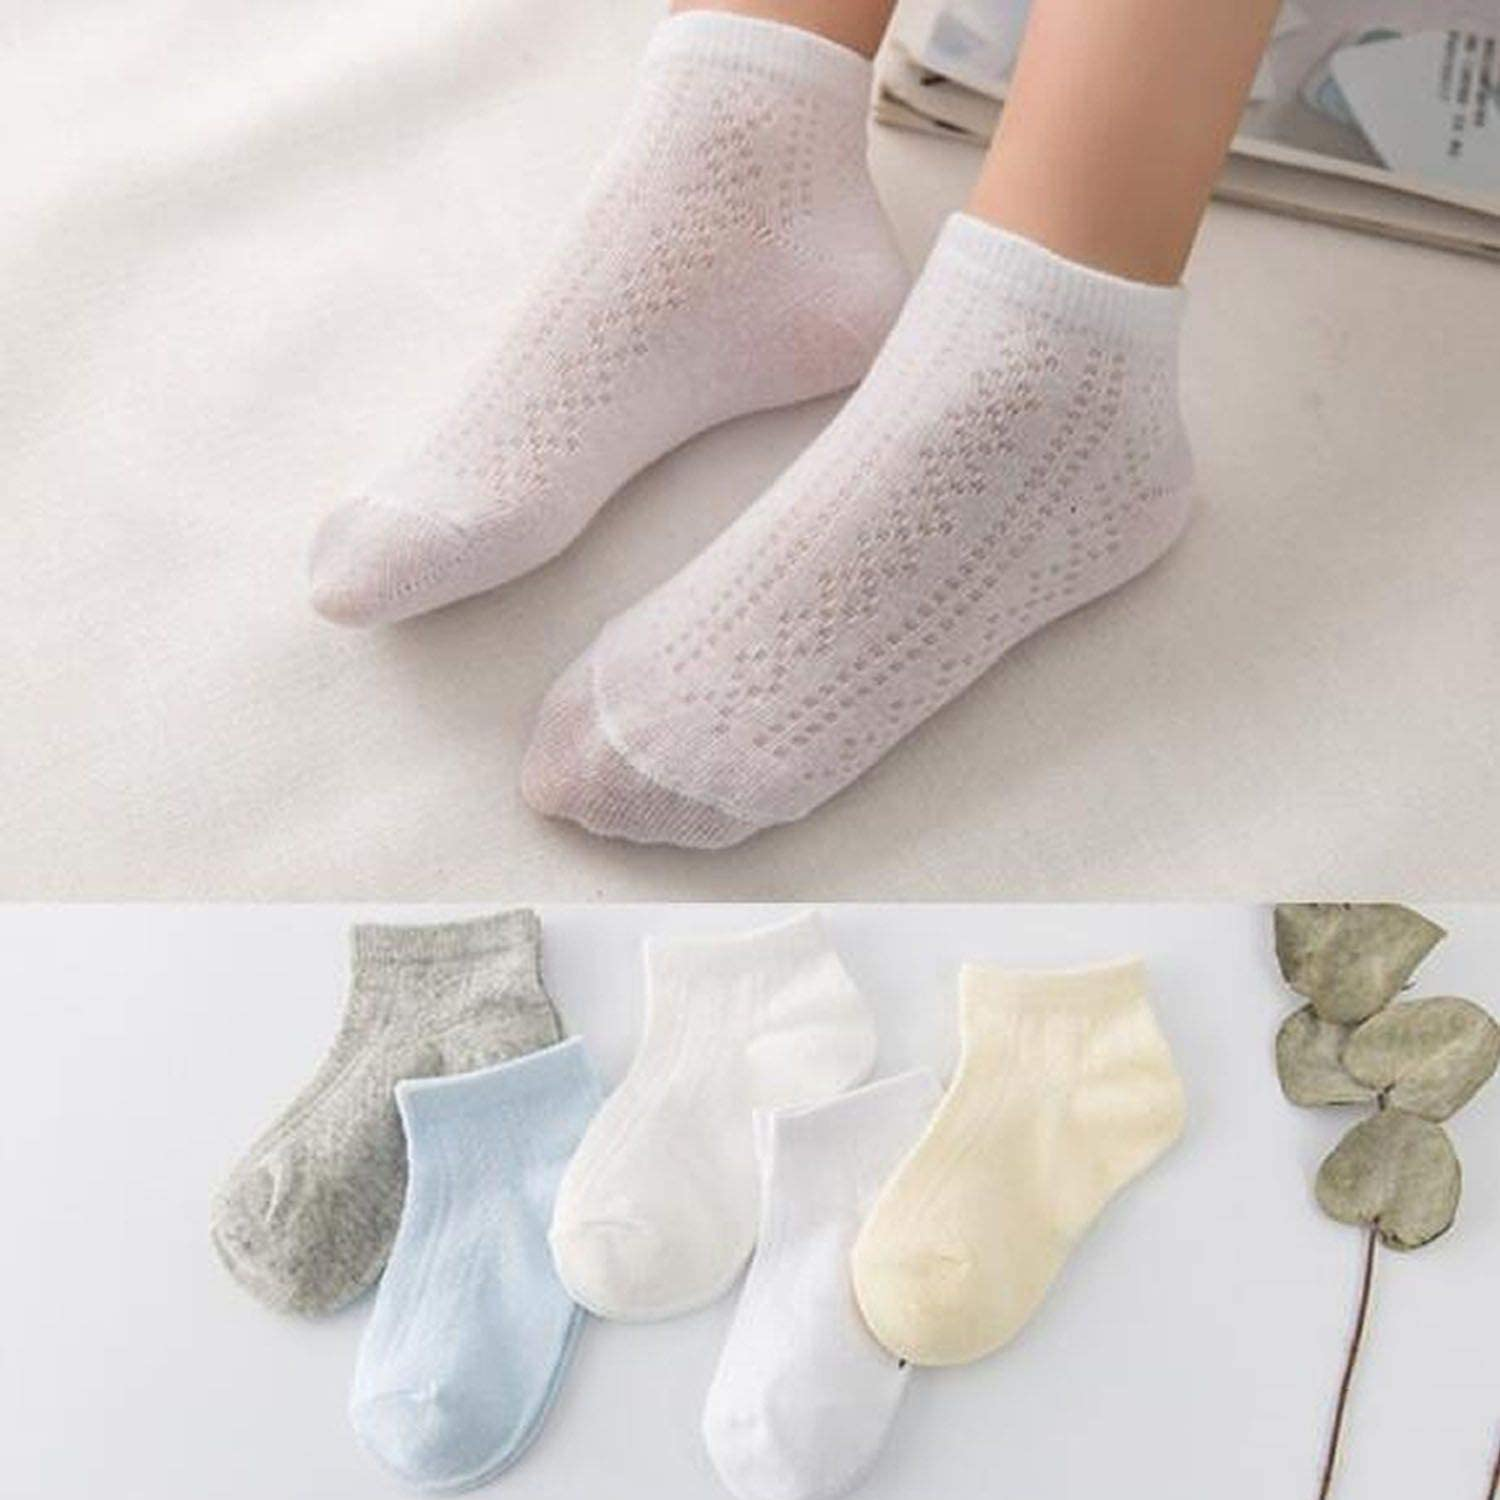 6 Pairs Toddler Baby Boys Girls Socks Solid Cotton Summer Breathable Soft Ankle Socks